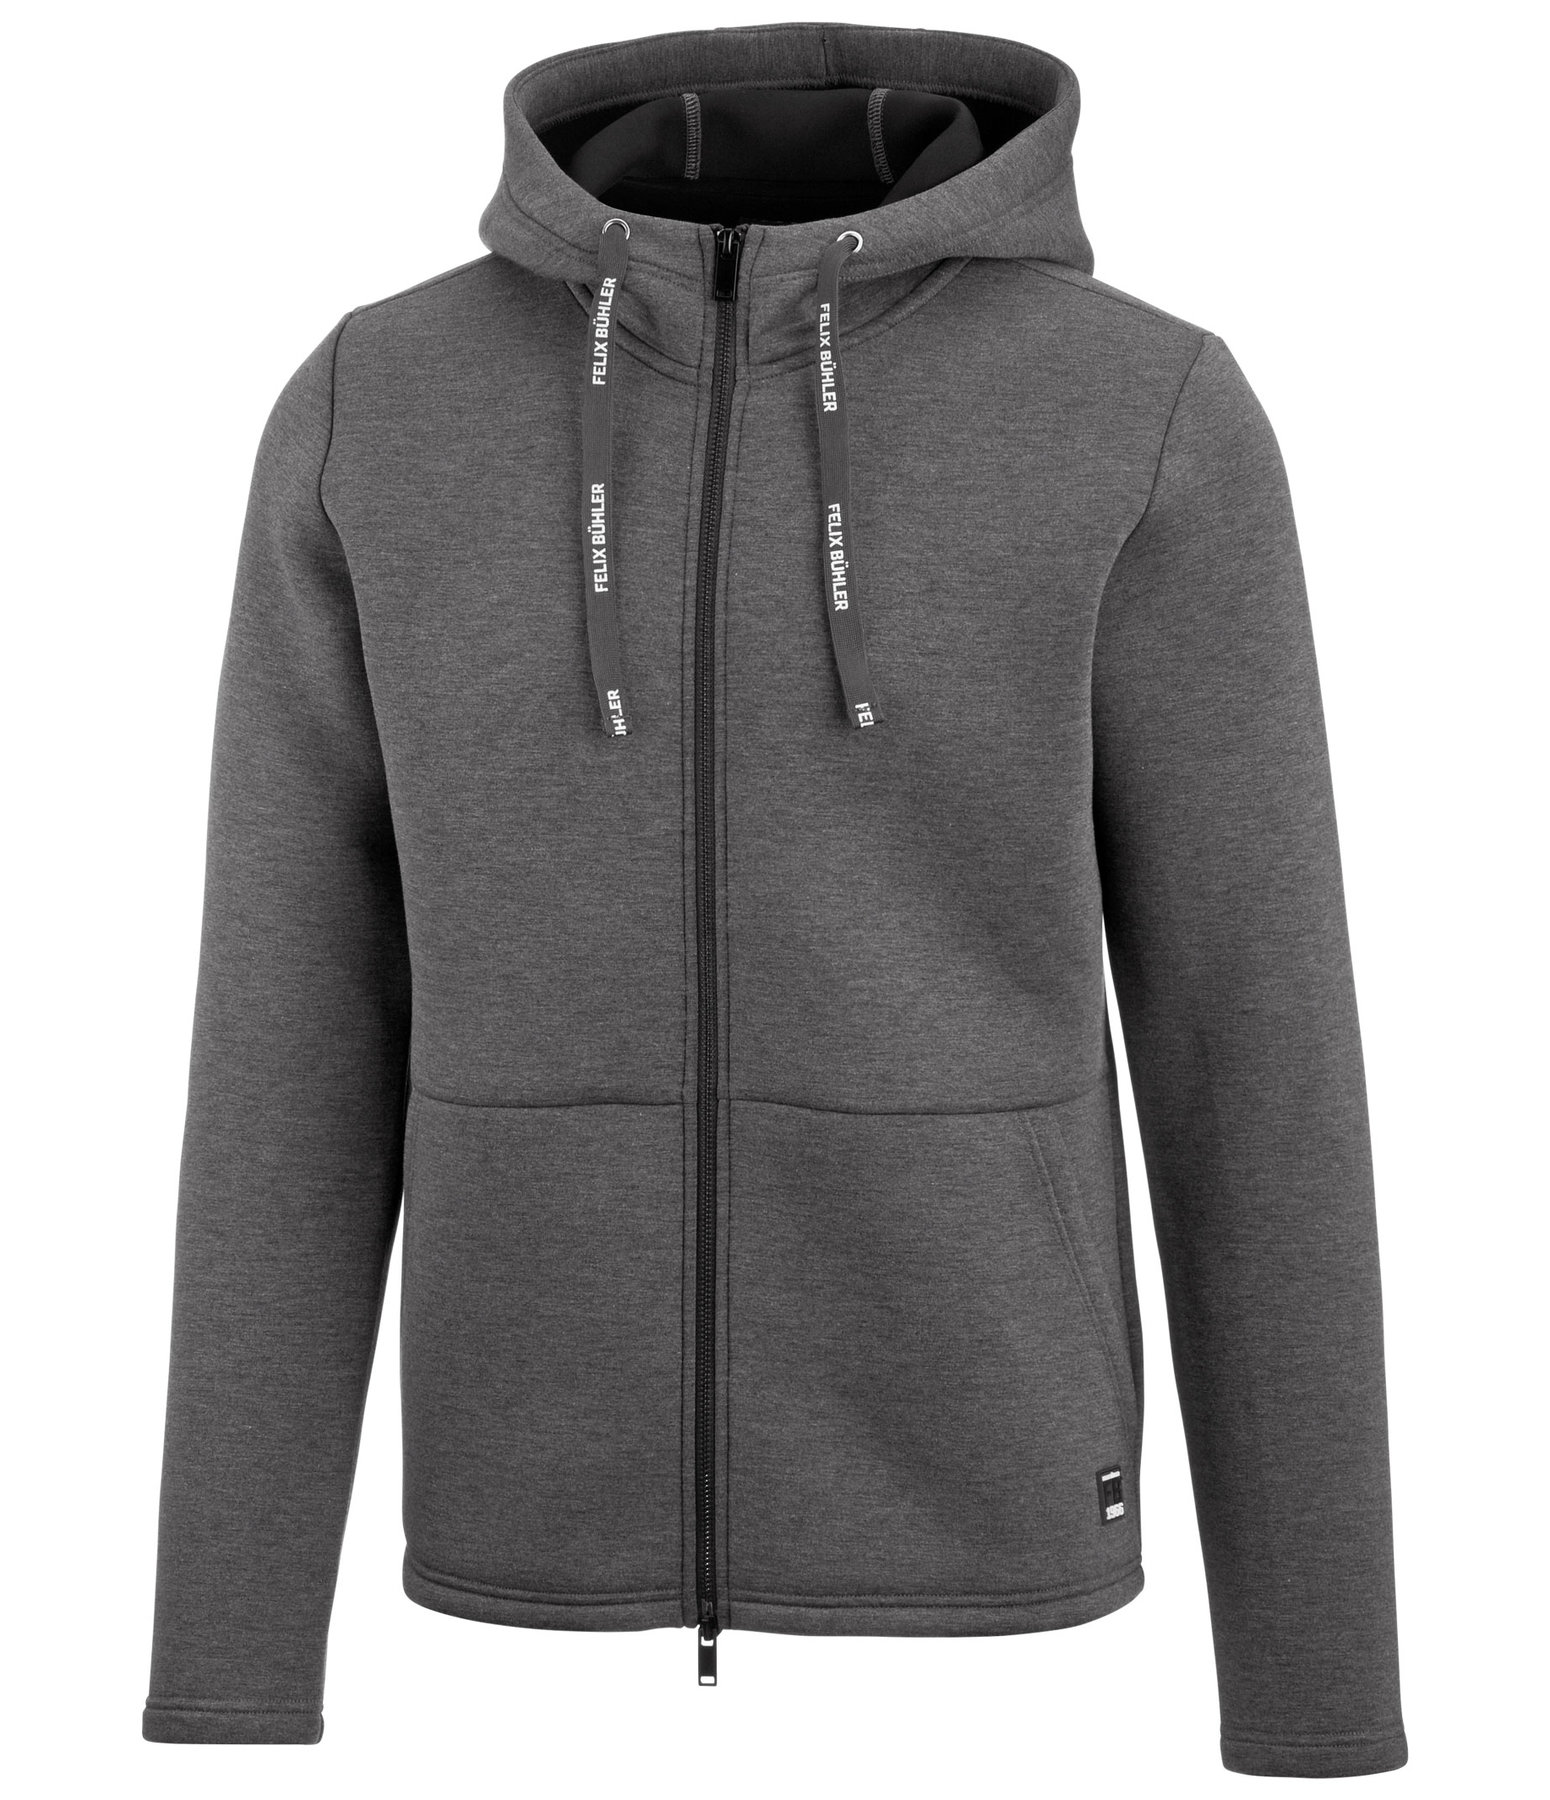 Herren-Sweatjacke Jones